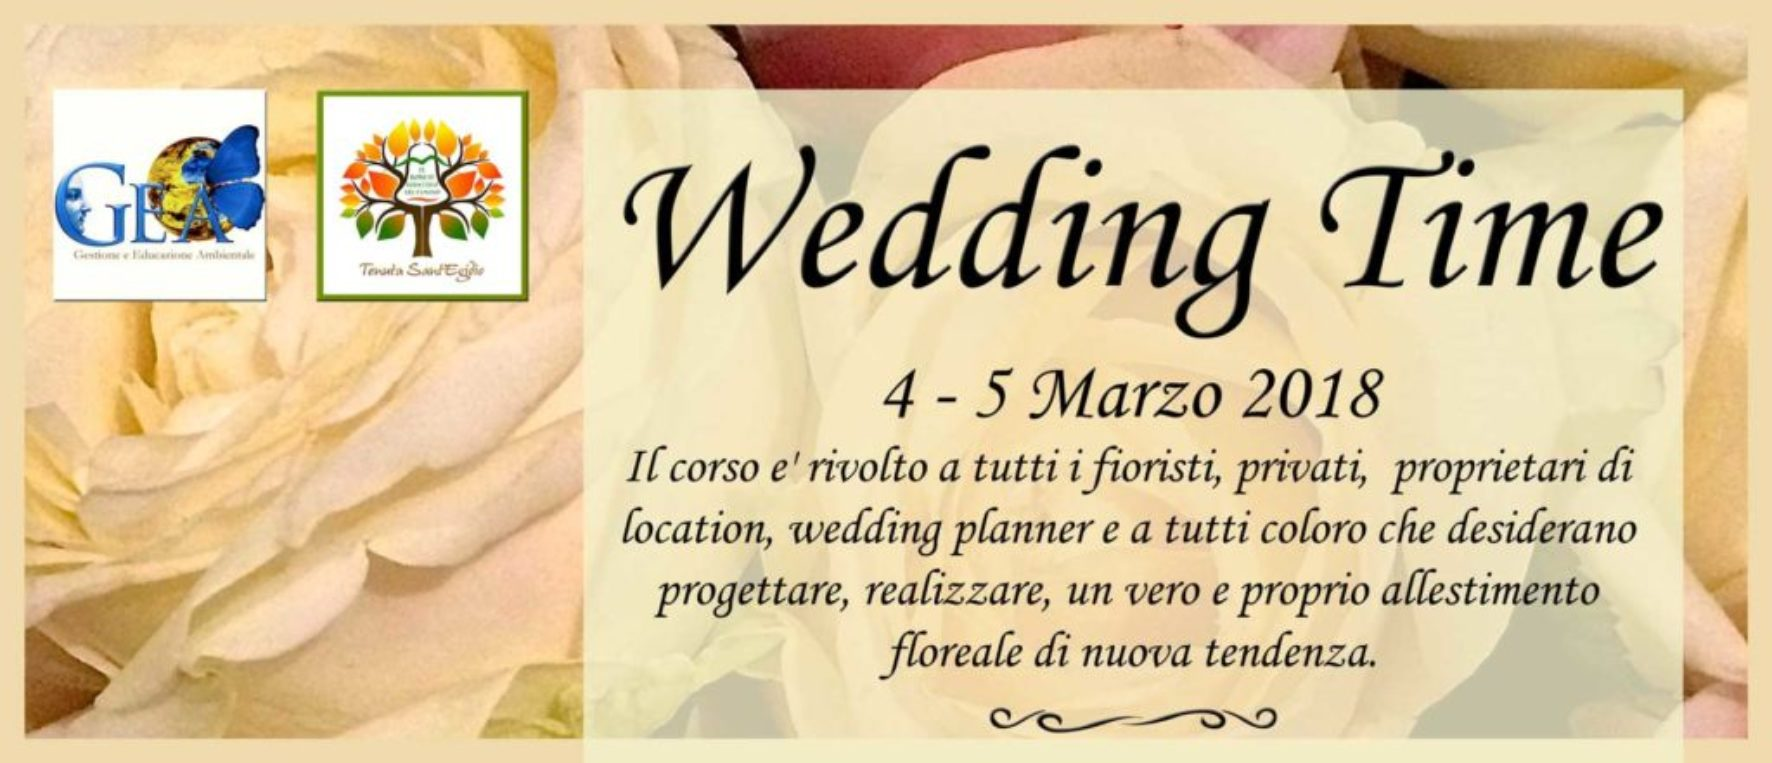 Corso-Wedding-Time-Alessiabanner